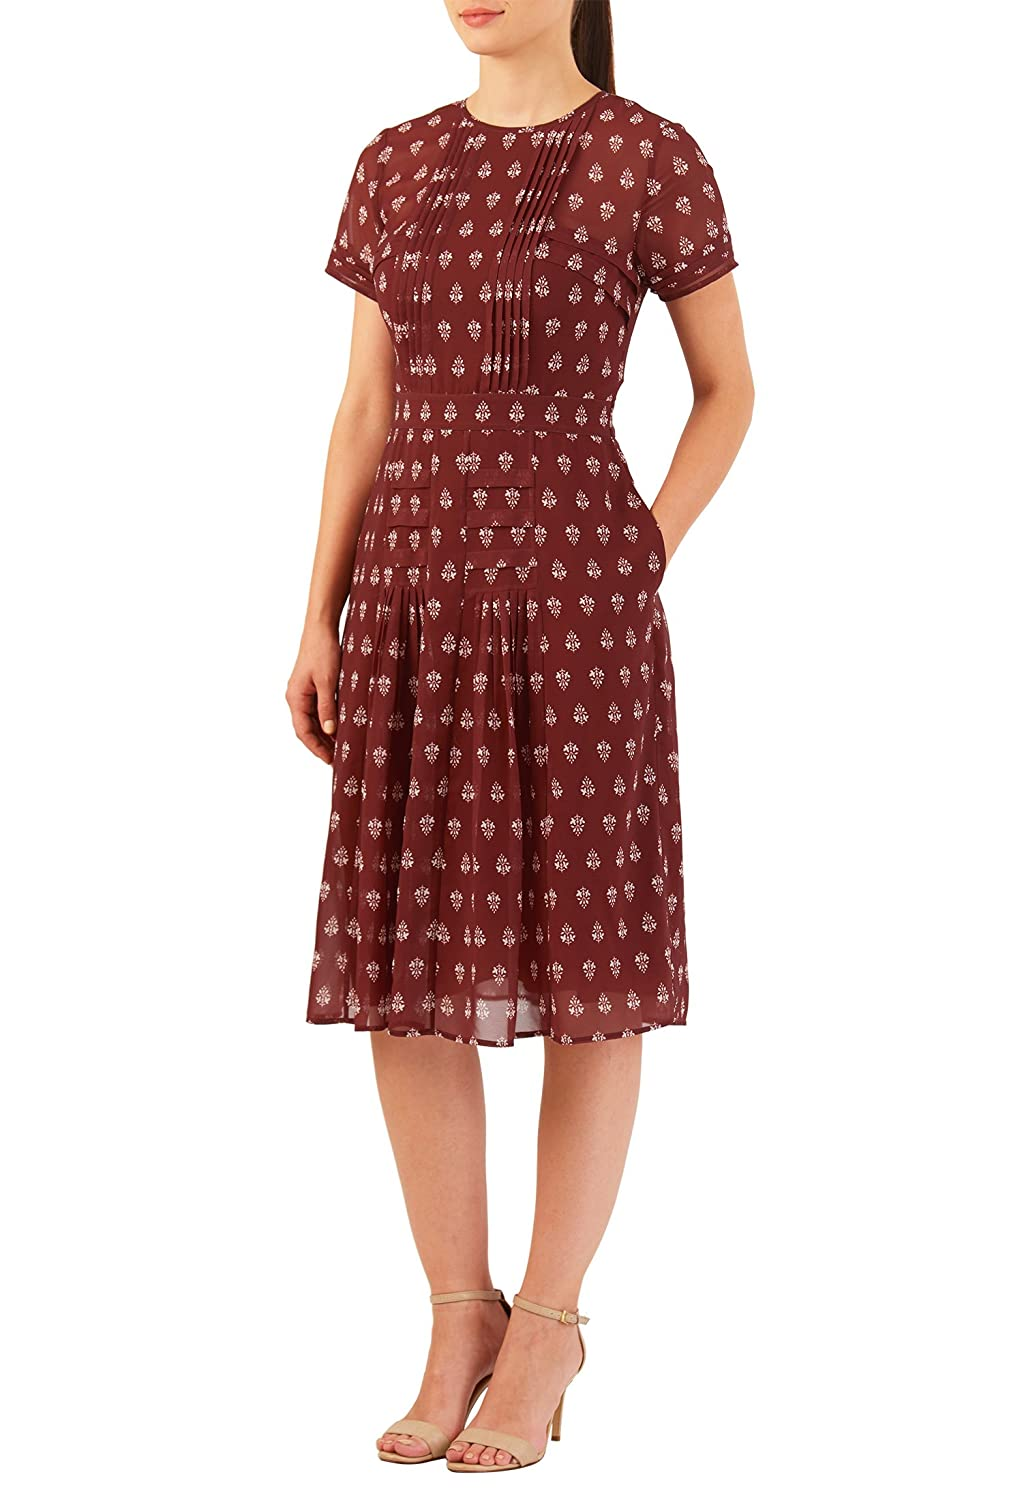 Plus Size Retro Dresses eShakti Womens Pleated tile print georgette A-line dress $62.95 AT vintagedancer.com